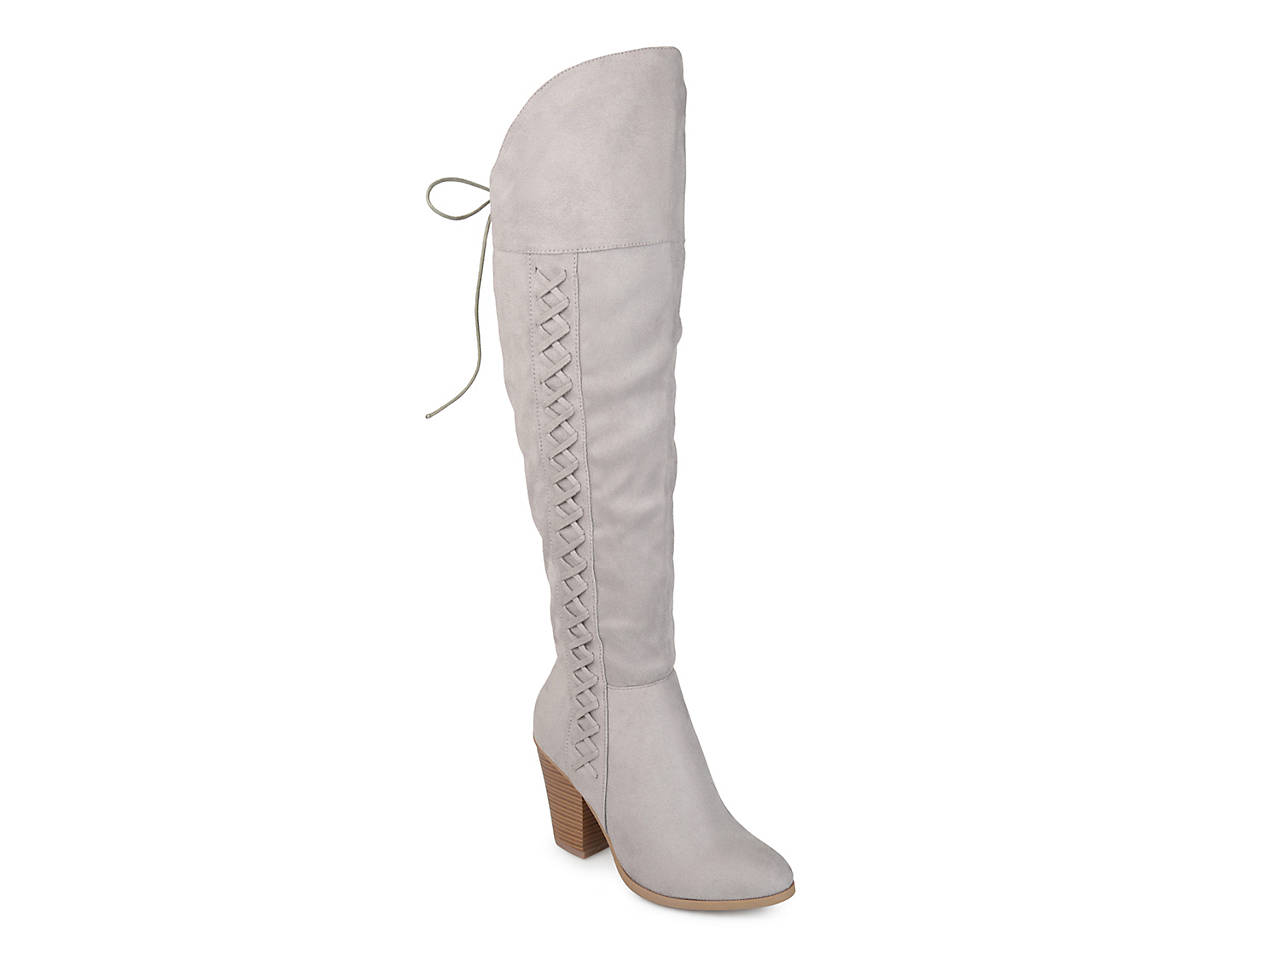 55e64ce66a7 Journee Collection Spritz Over The Knee Boot Women s Shoes